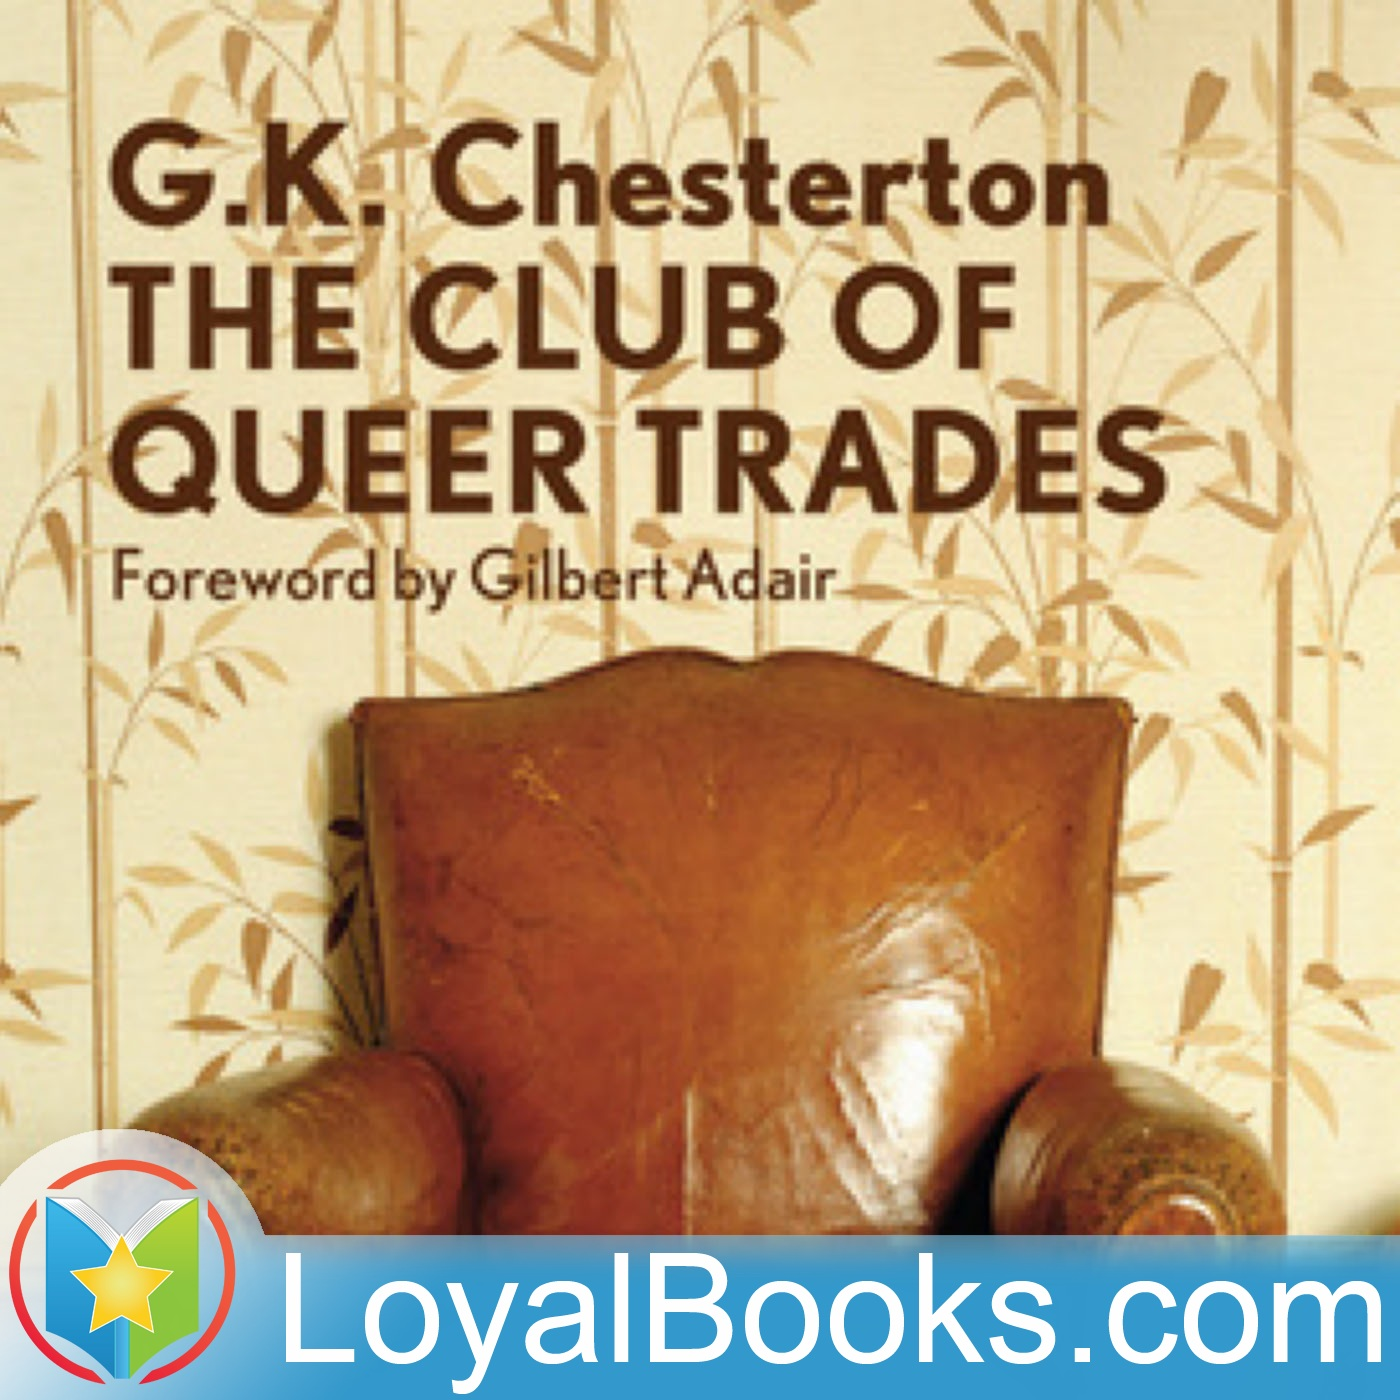 <![CDATA[The Club of Queer Trades by G. K. Chesterton]]>